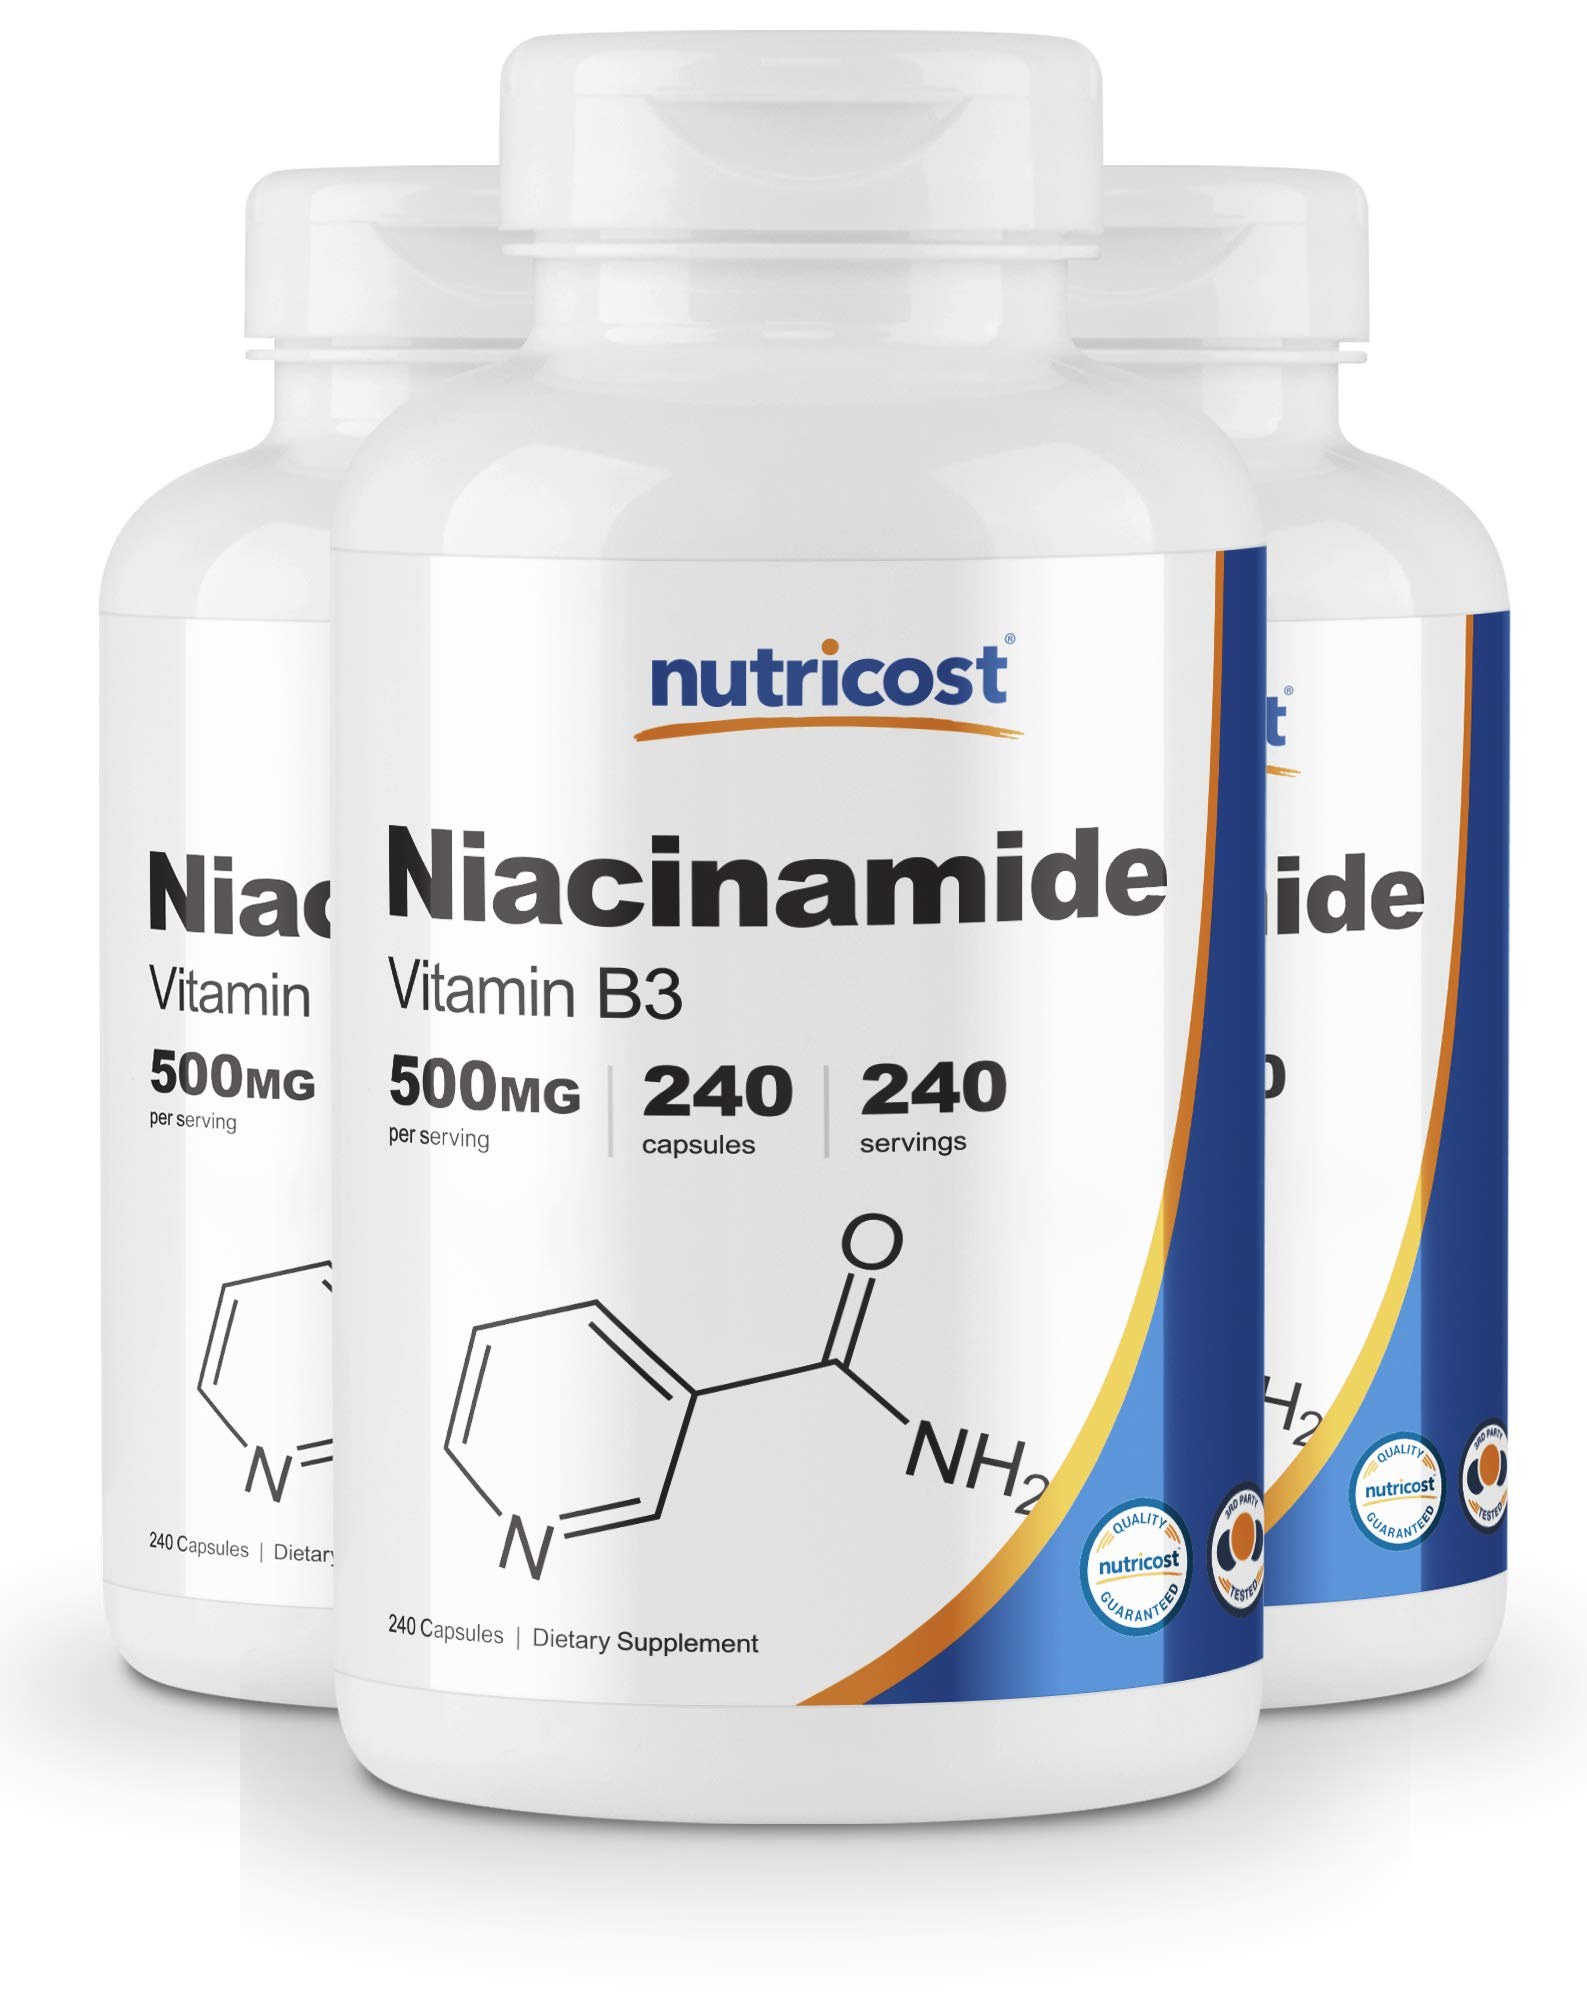 Nutricost Niacinamide (Vitamin B3) 500mg, 240 Capsules (3 Bottles) by Nutricost